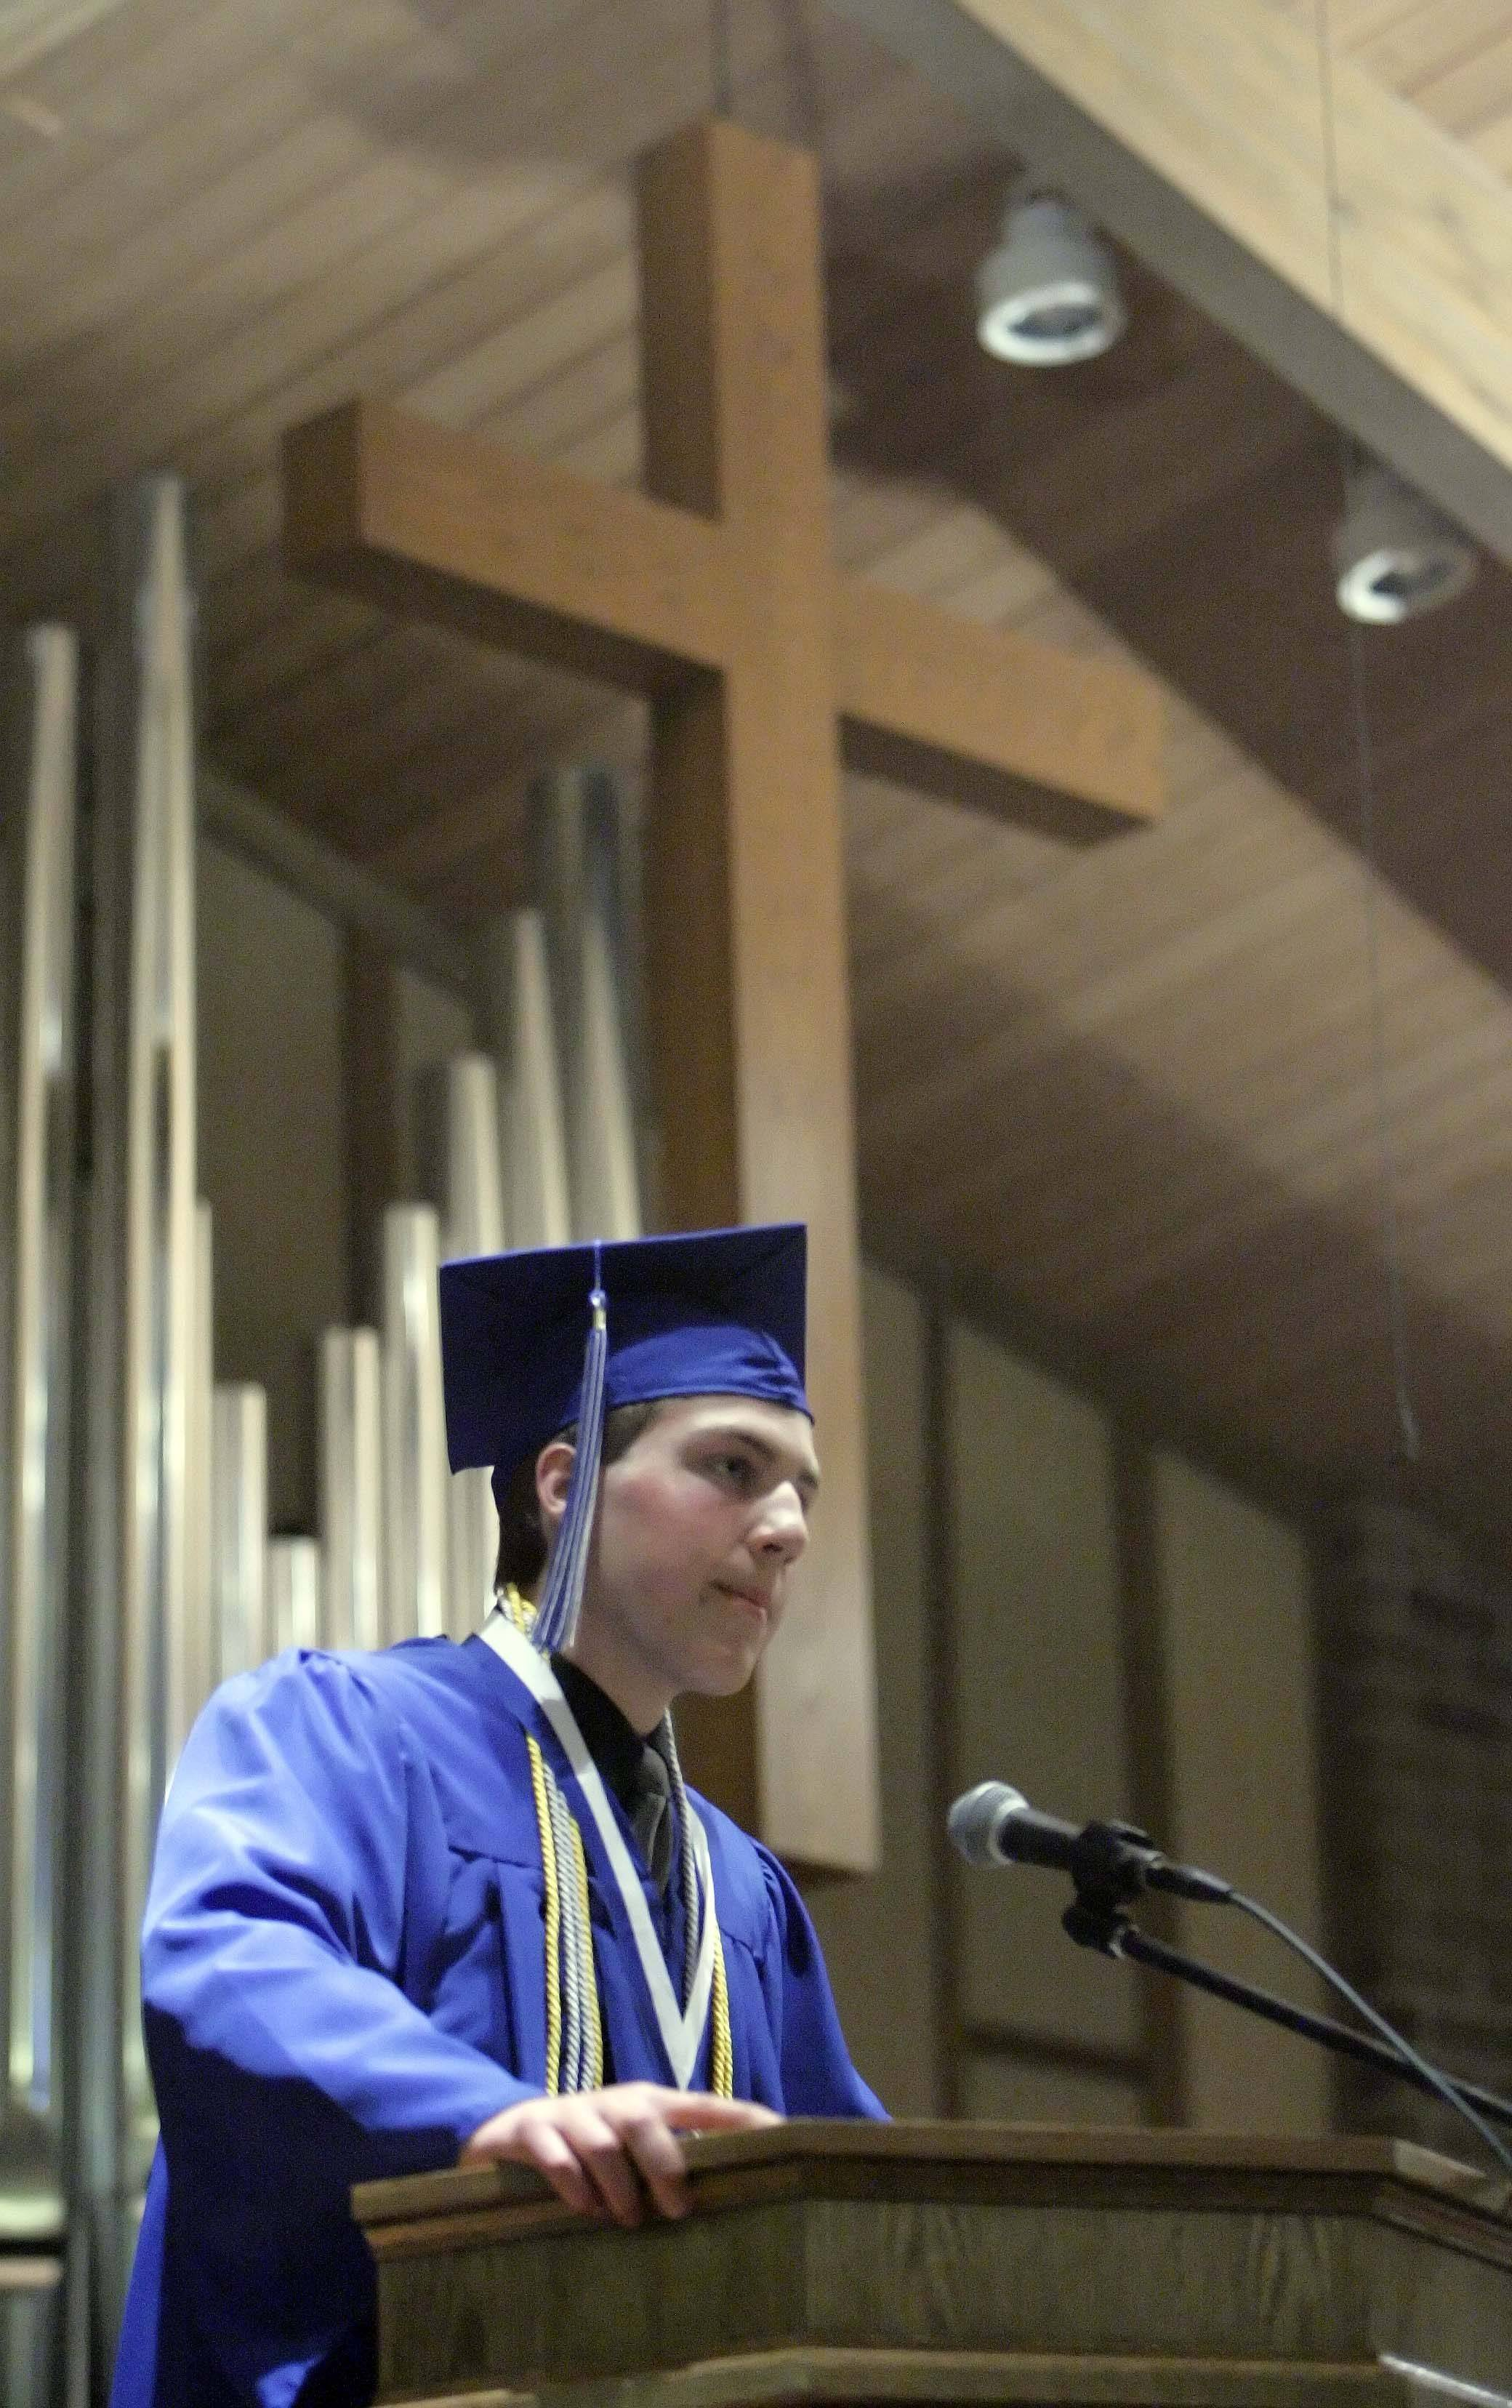 Valedictorian Luke Carani delivers his address during the Westminster Christian High School graduation Friday, May 27, 2011 at the Elgin school.